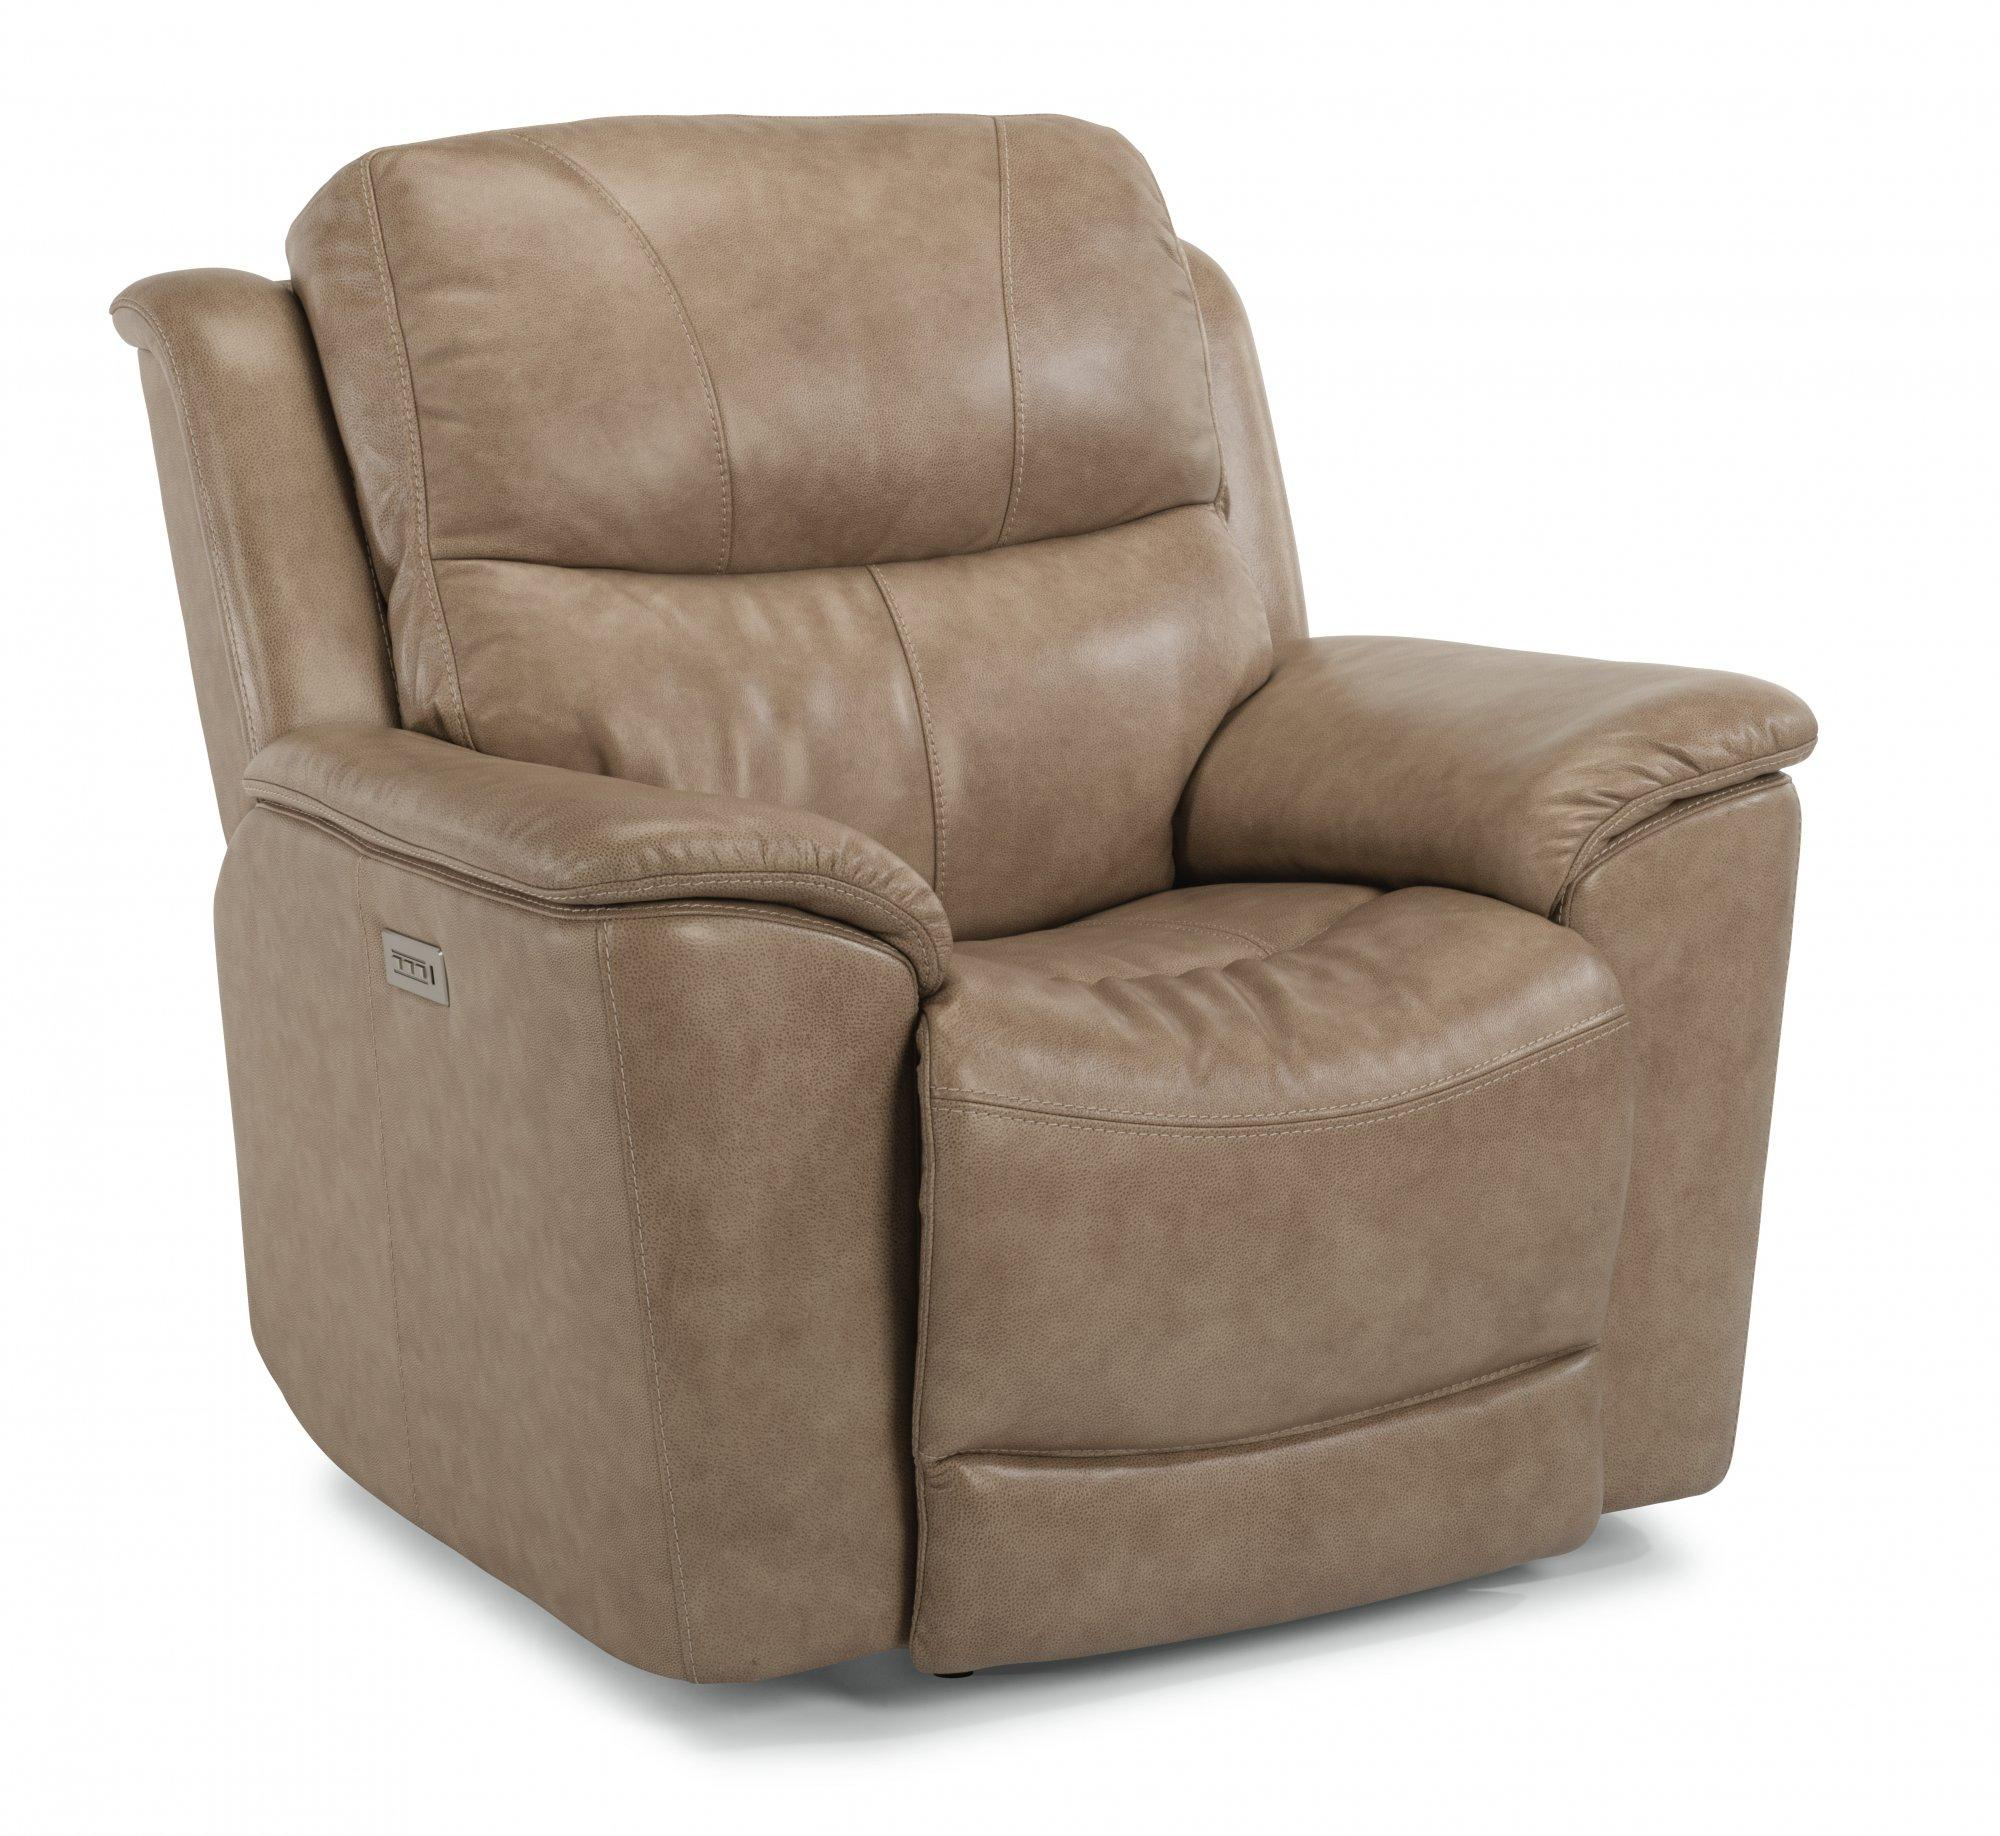 FlexsteelCade Power Recliner With Power Headrest & Lumbar